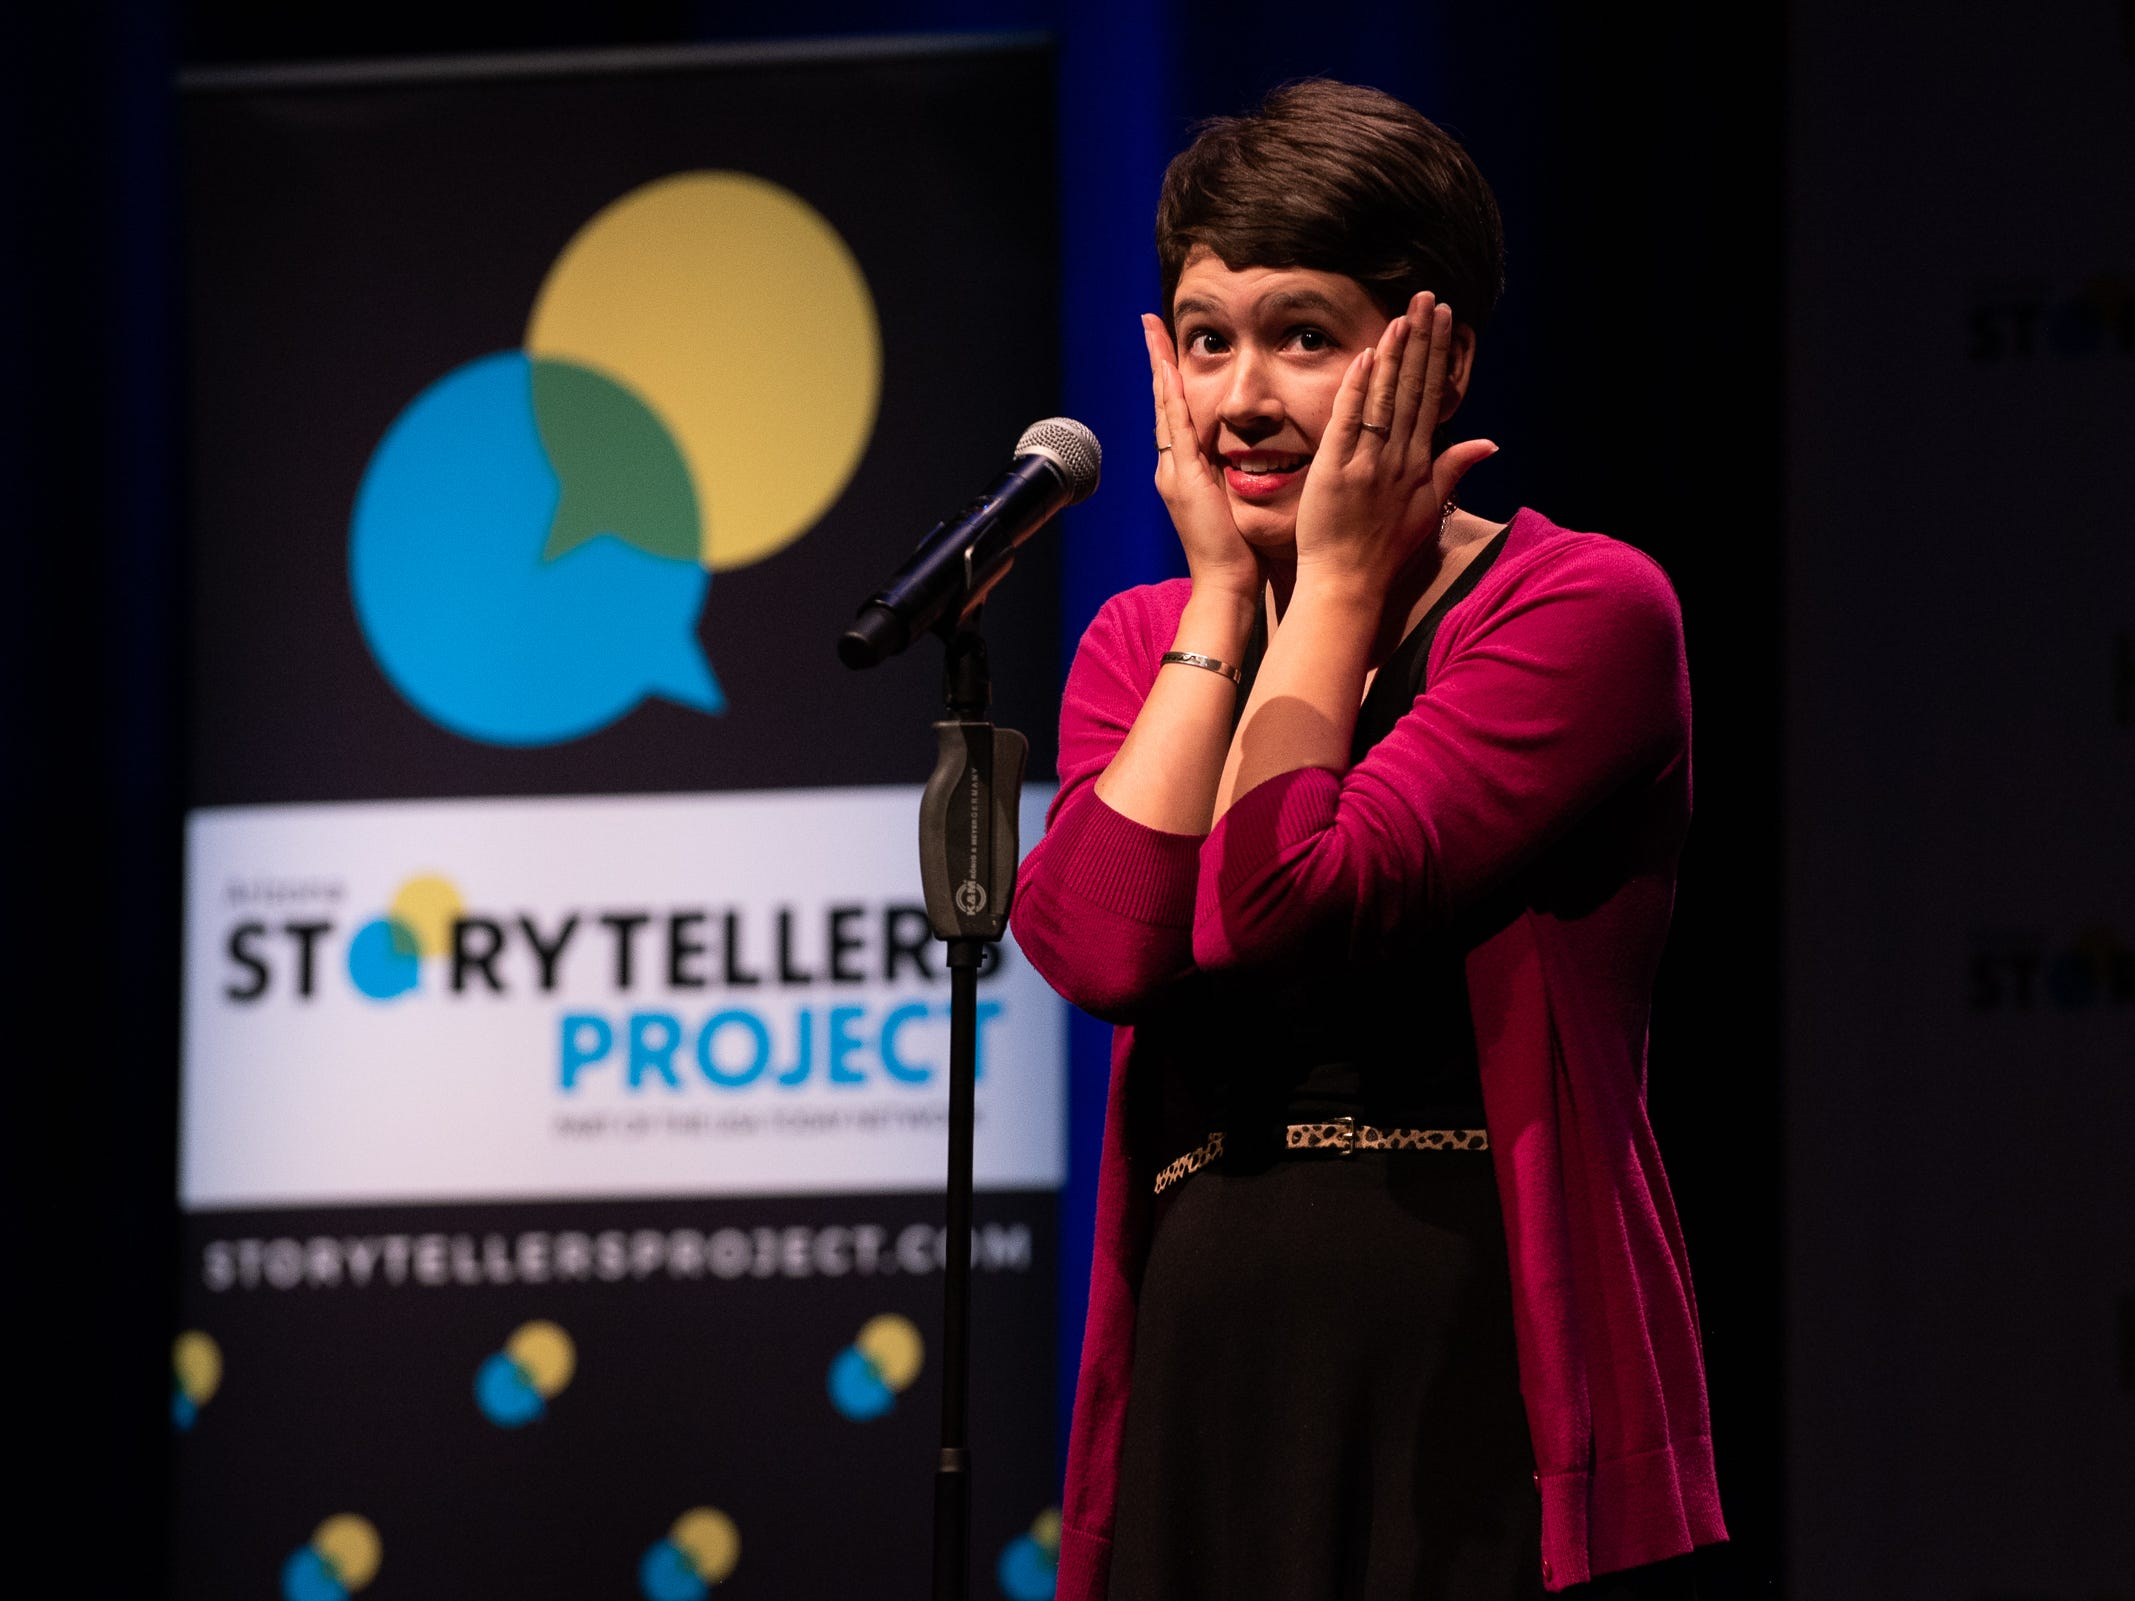 Eva Jannotta tells her tale during The Storytellers Project presents Romance - or Not at the Scottsdale Center for Performing Arts on Wednesday, Feb. 13, 2019.